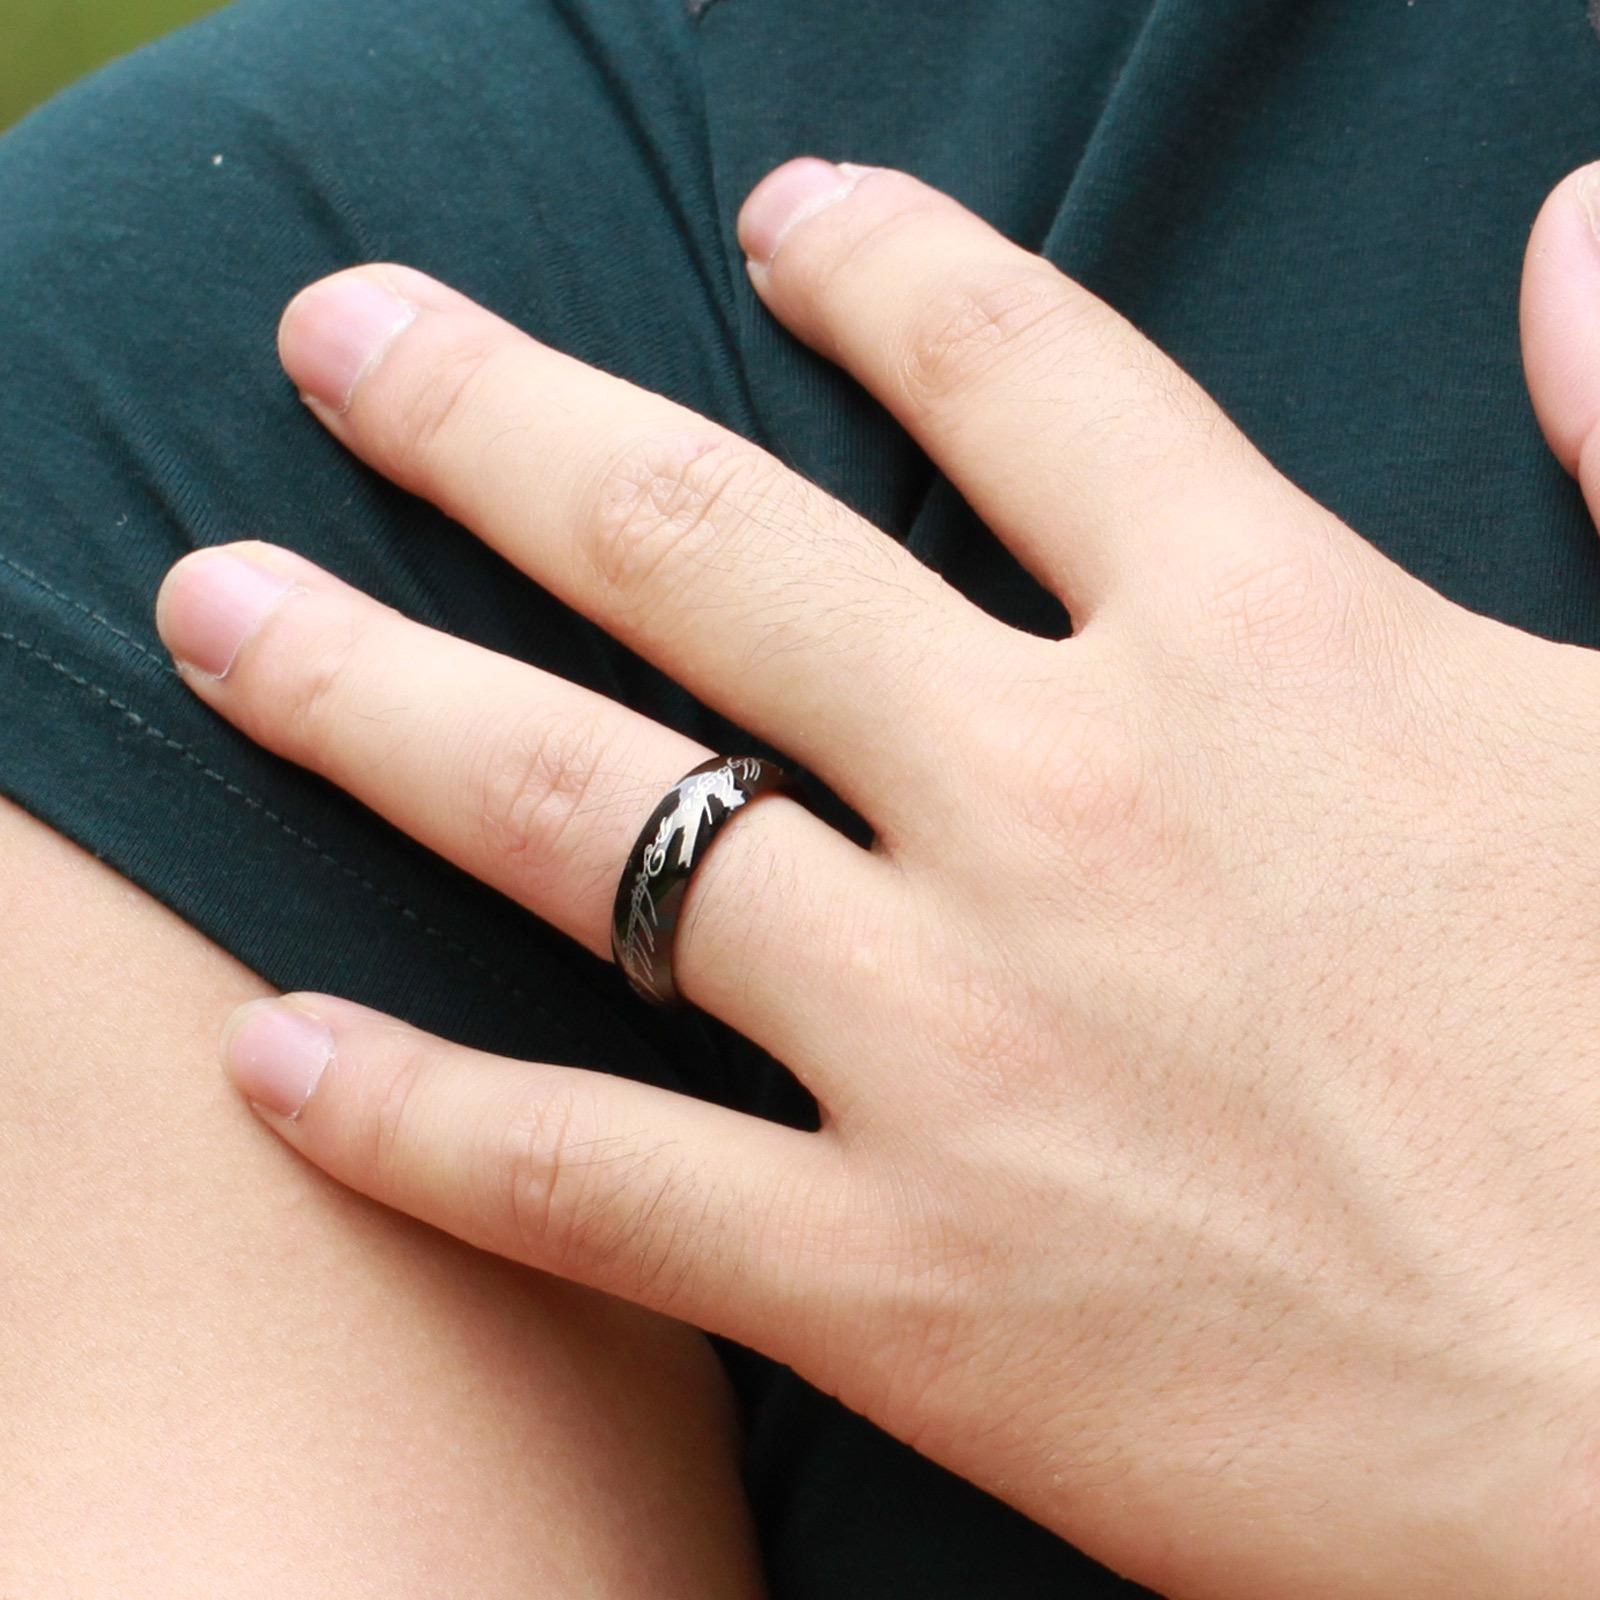 Fashion jewelry movie men 39 s finger rings the one ring Which finger to wear ring for single